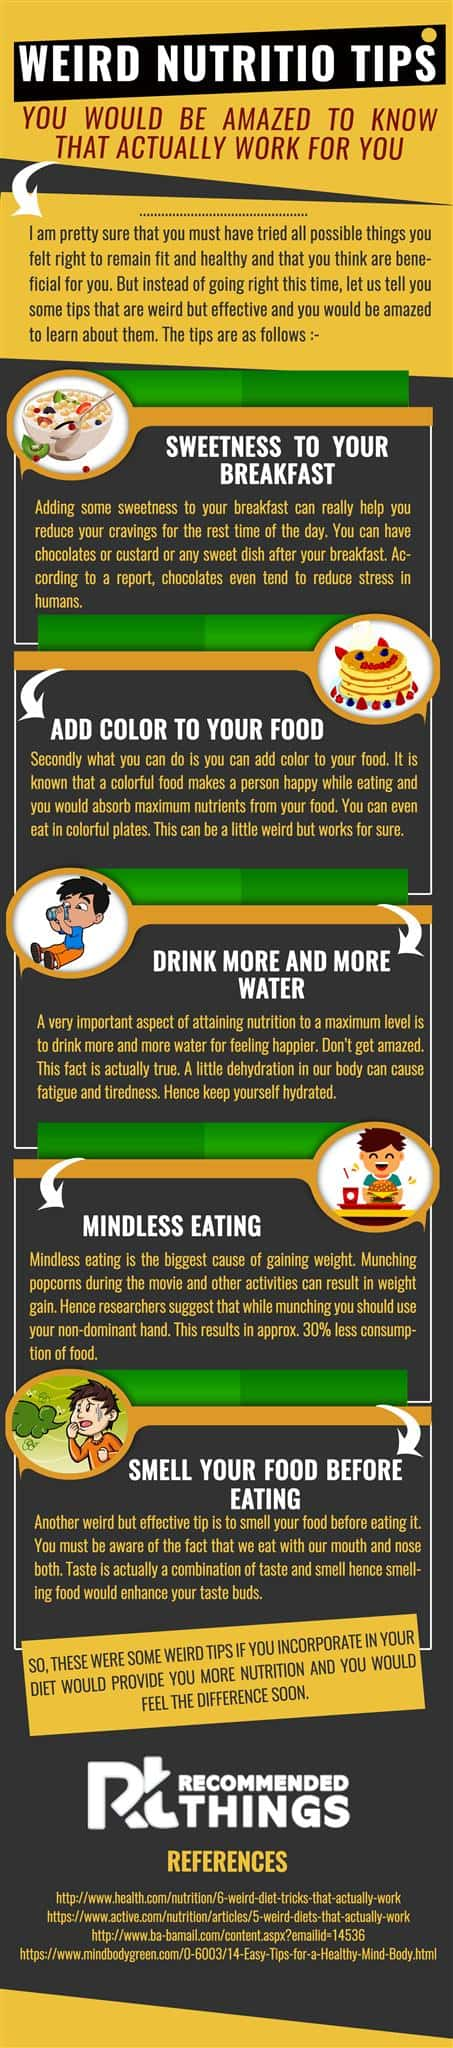 Weird Nutrition Tips You Would Be Amazed To Know